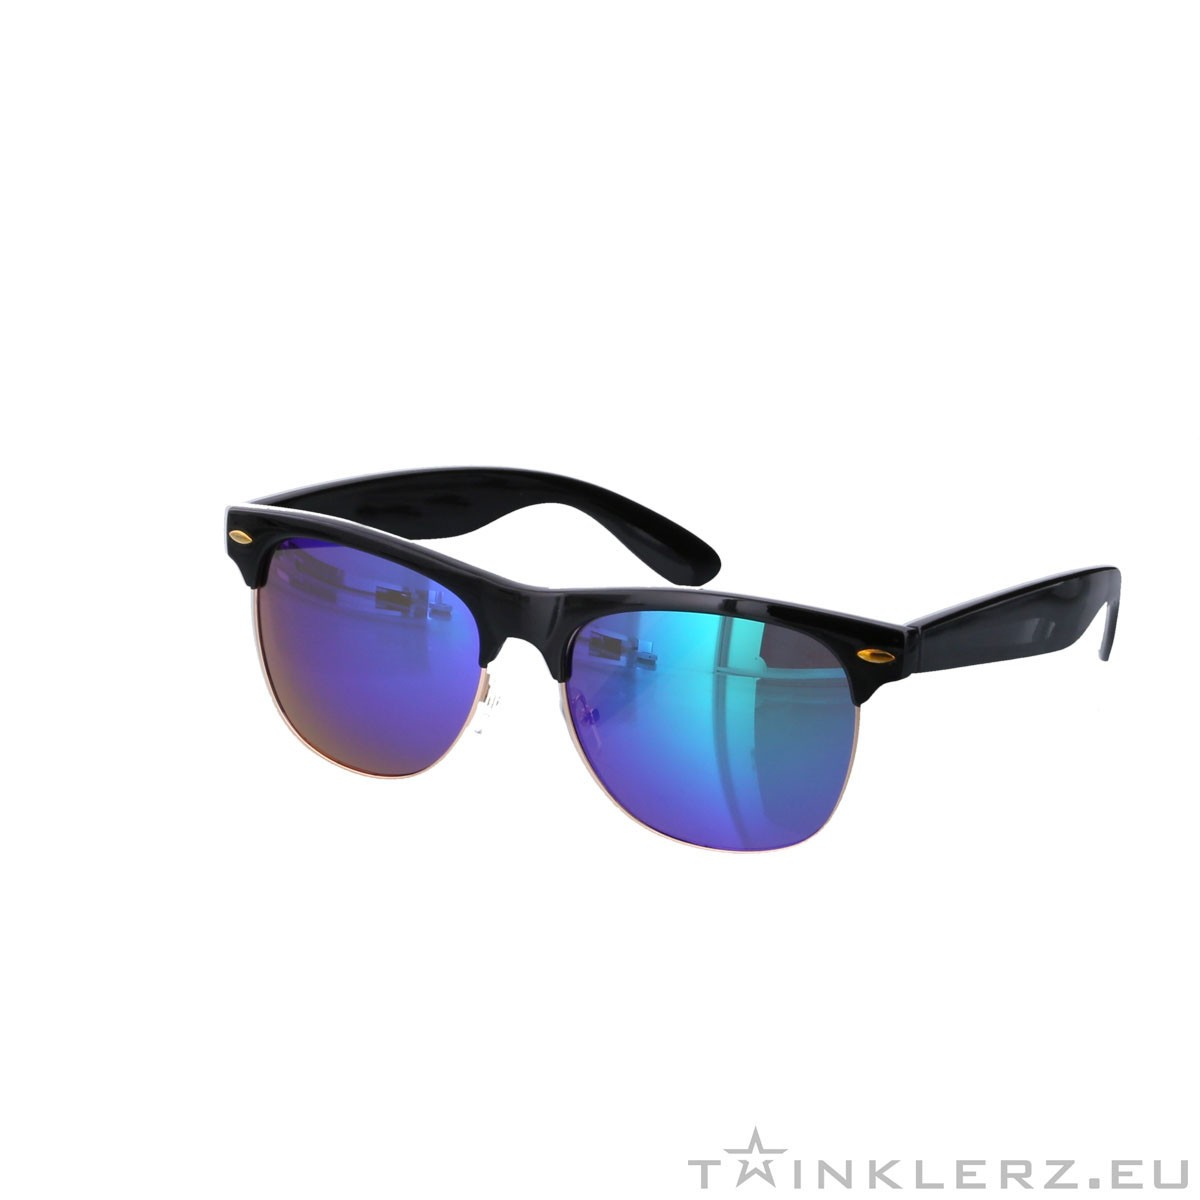 Clubmaster modern sunglasses - purple green mirror glass